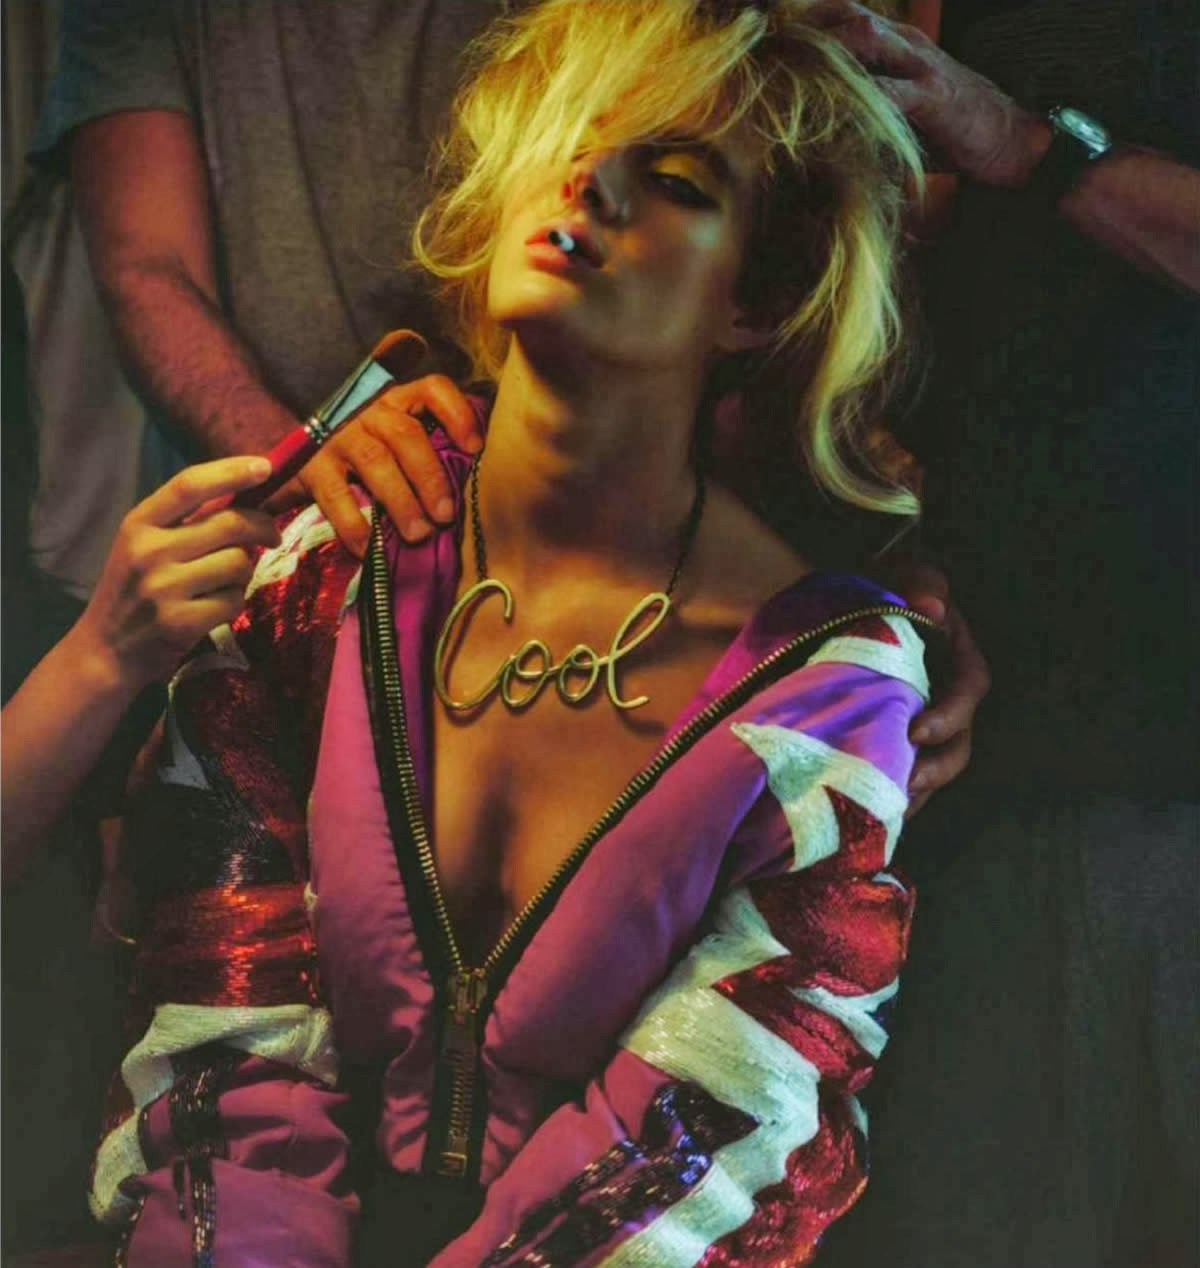 Celebrites Fanny Francois nude (31 photos), Tits, Leaked, Selfie, see through 2006